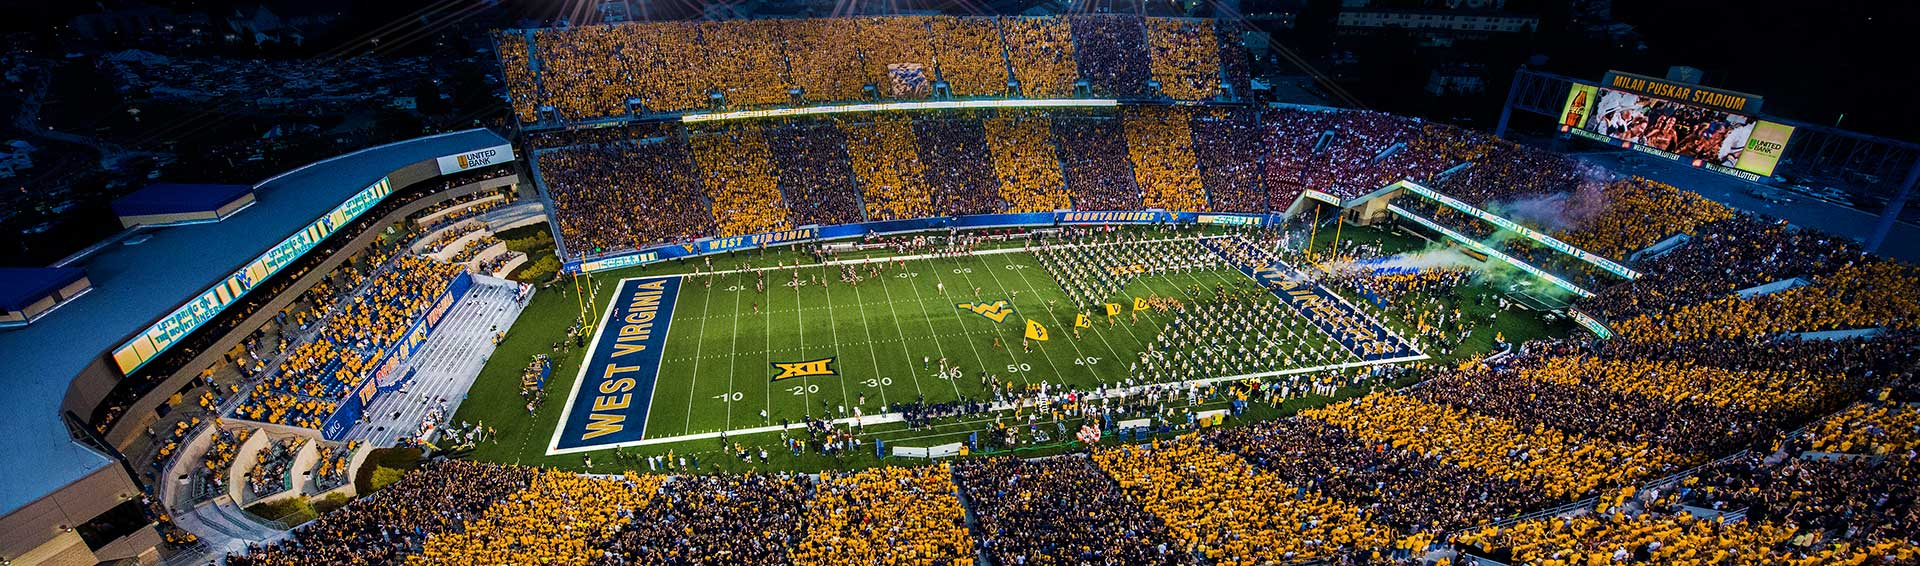 WVU Stripe the Stadium